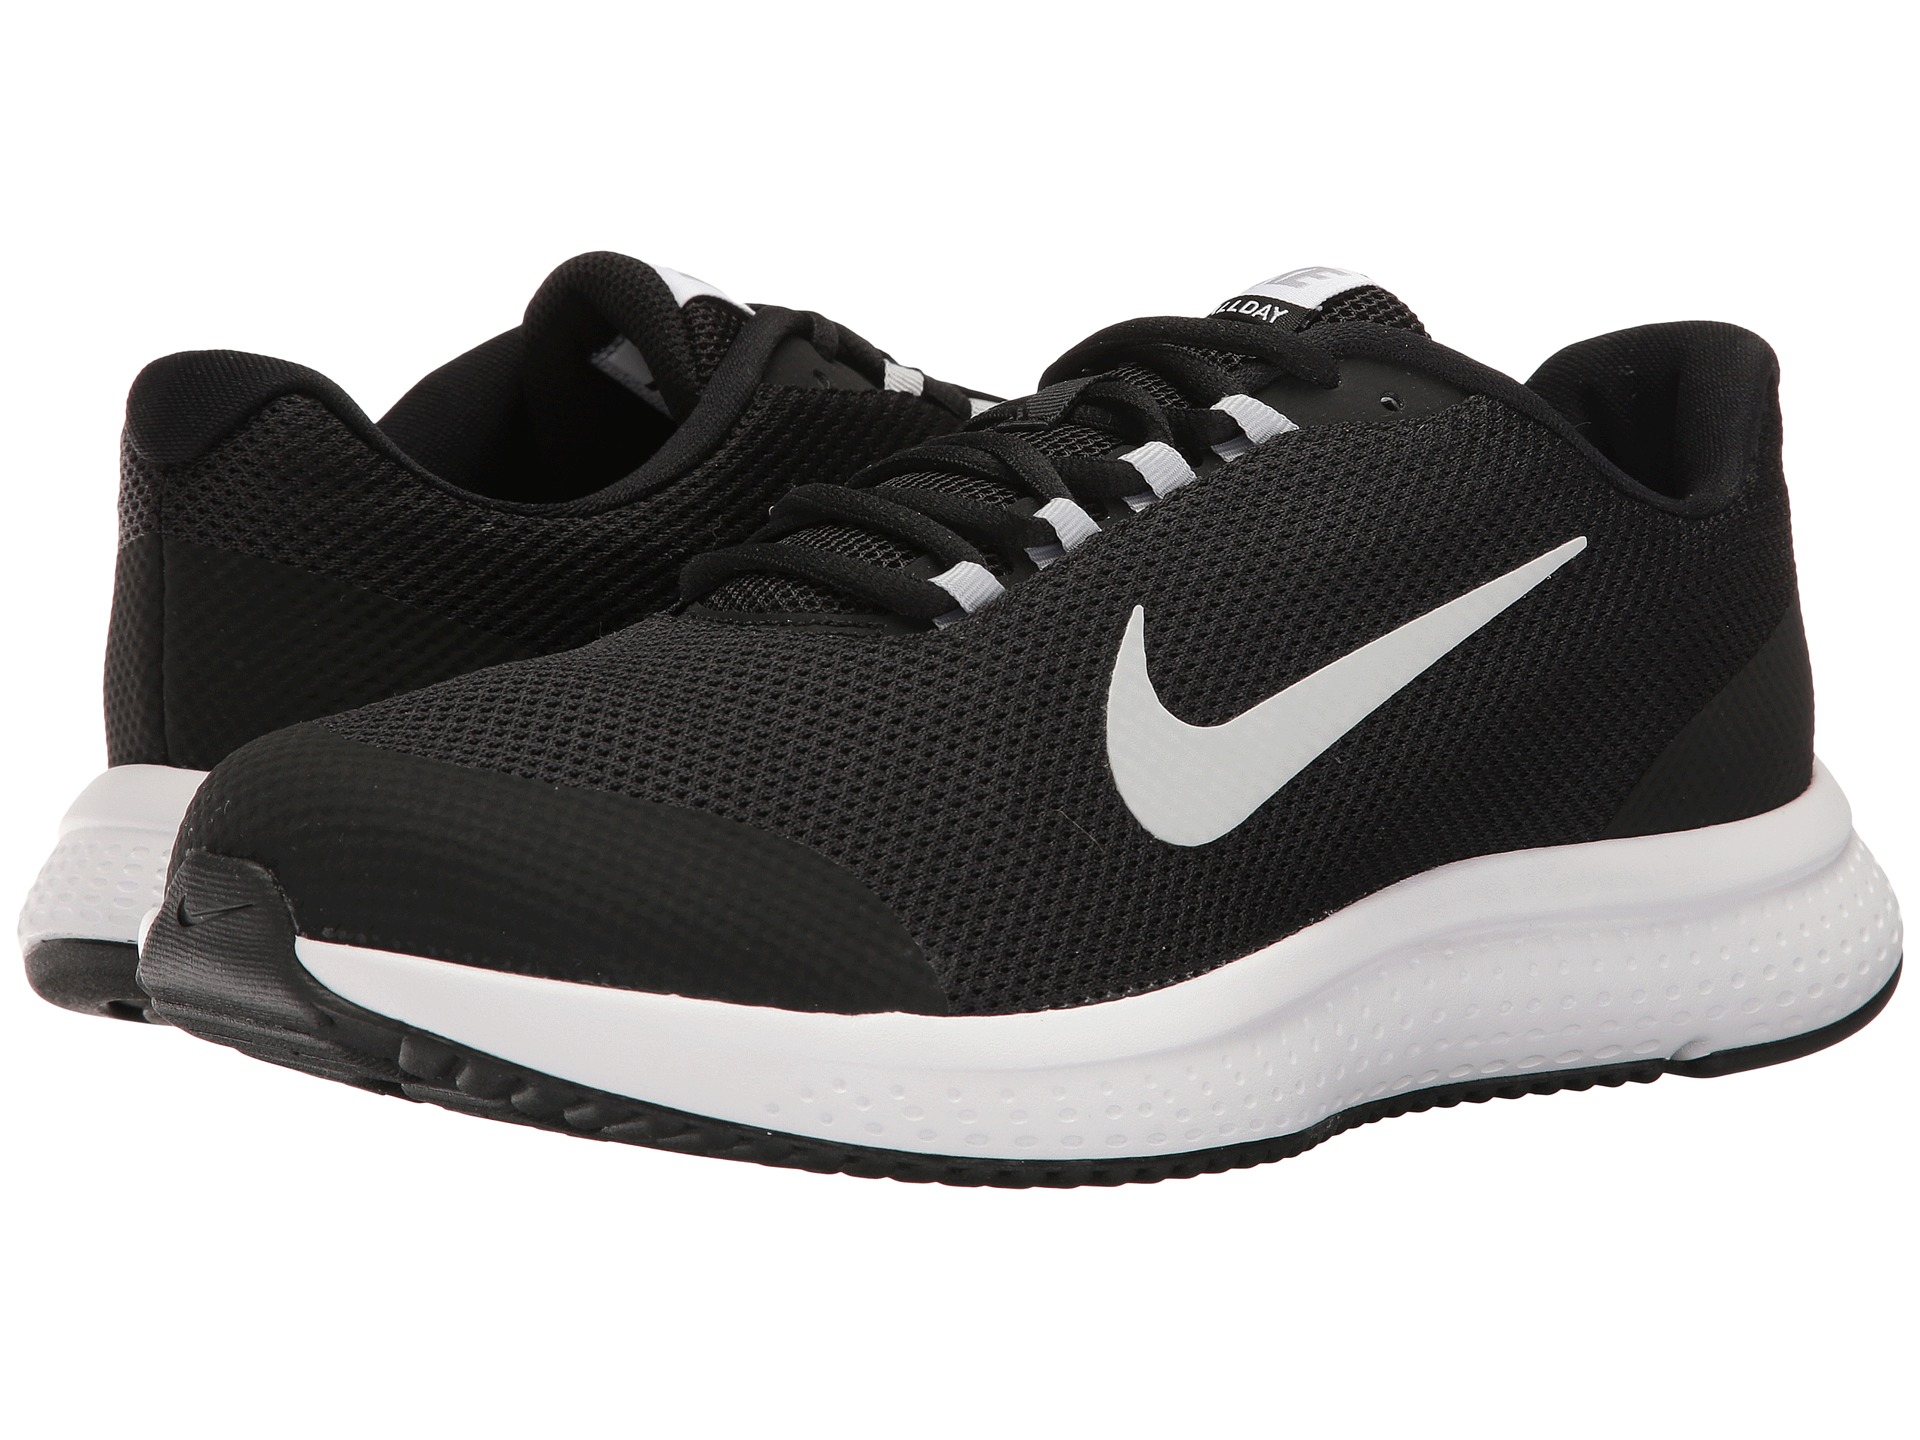 Nike Size Chart Shoes Y